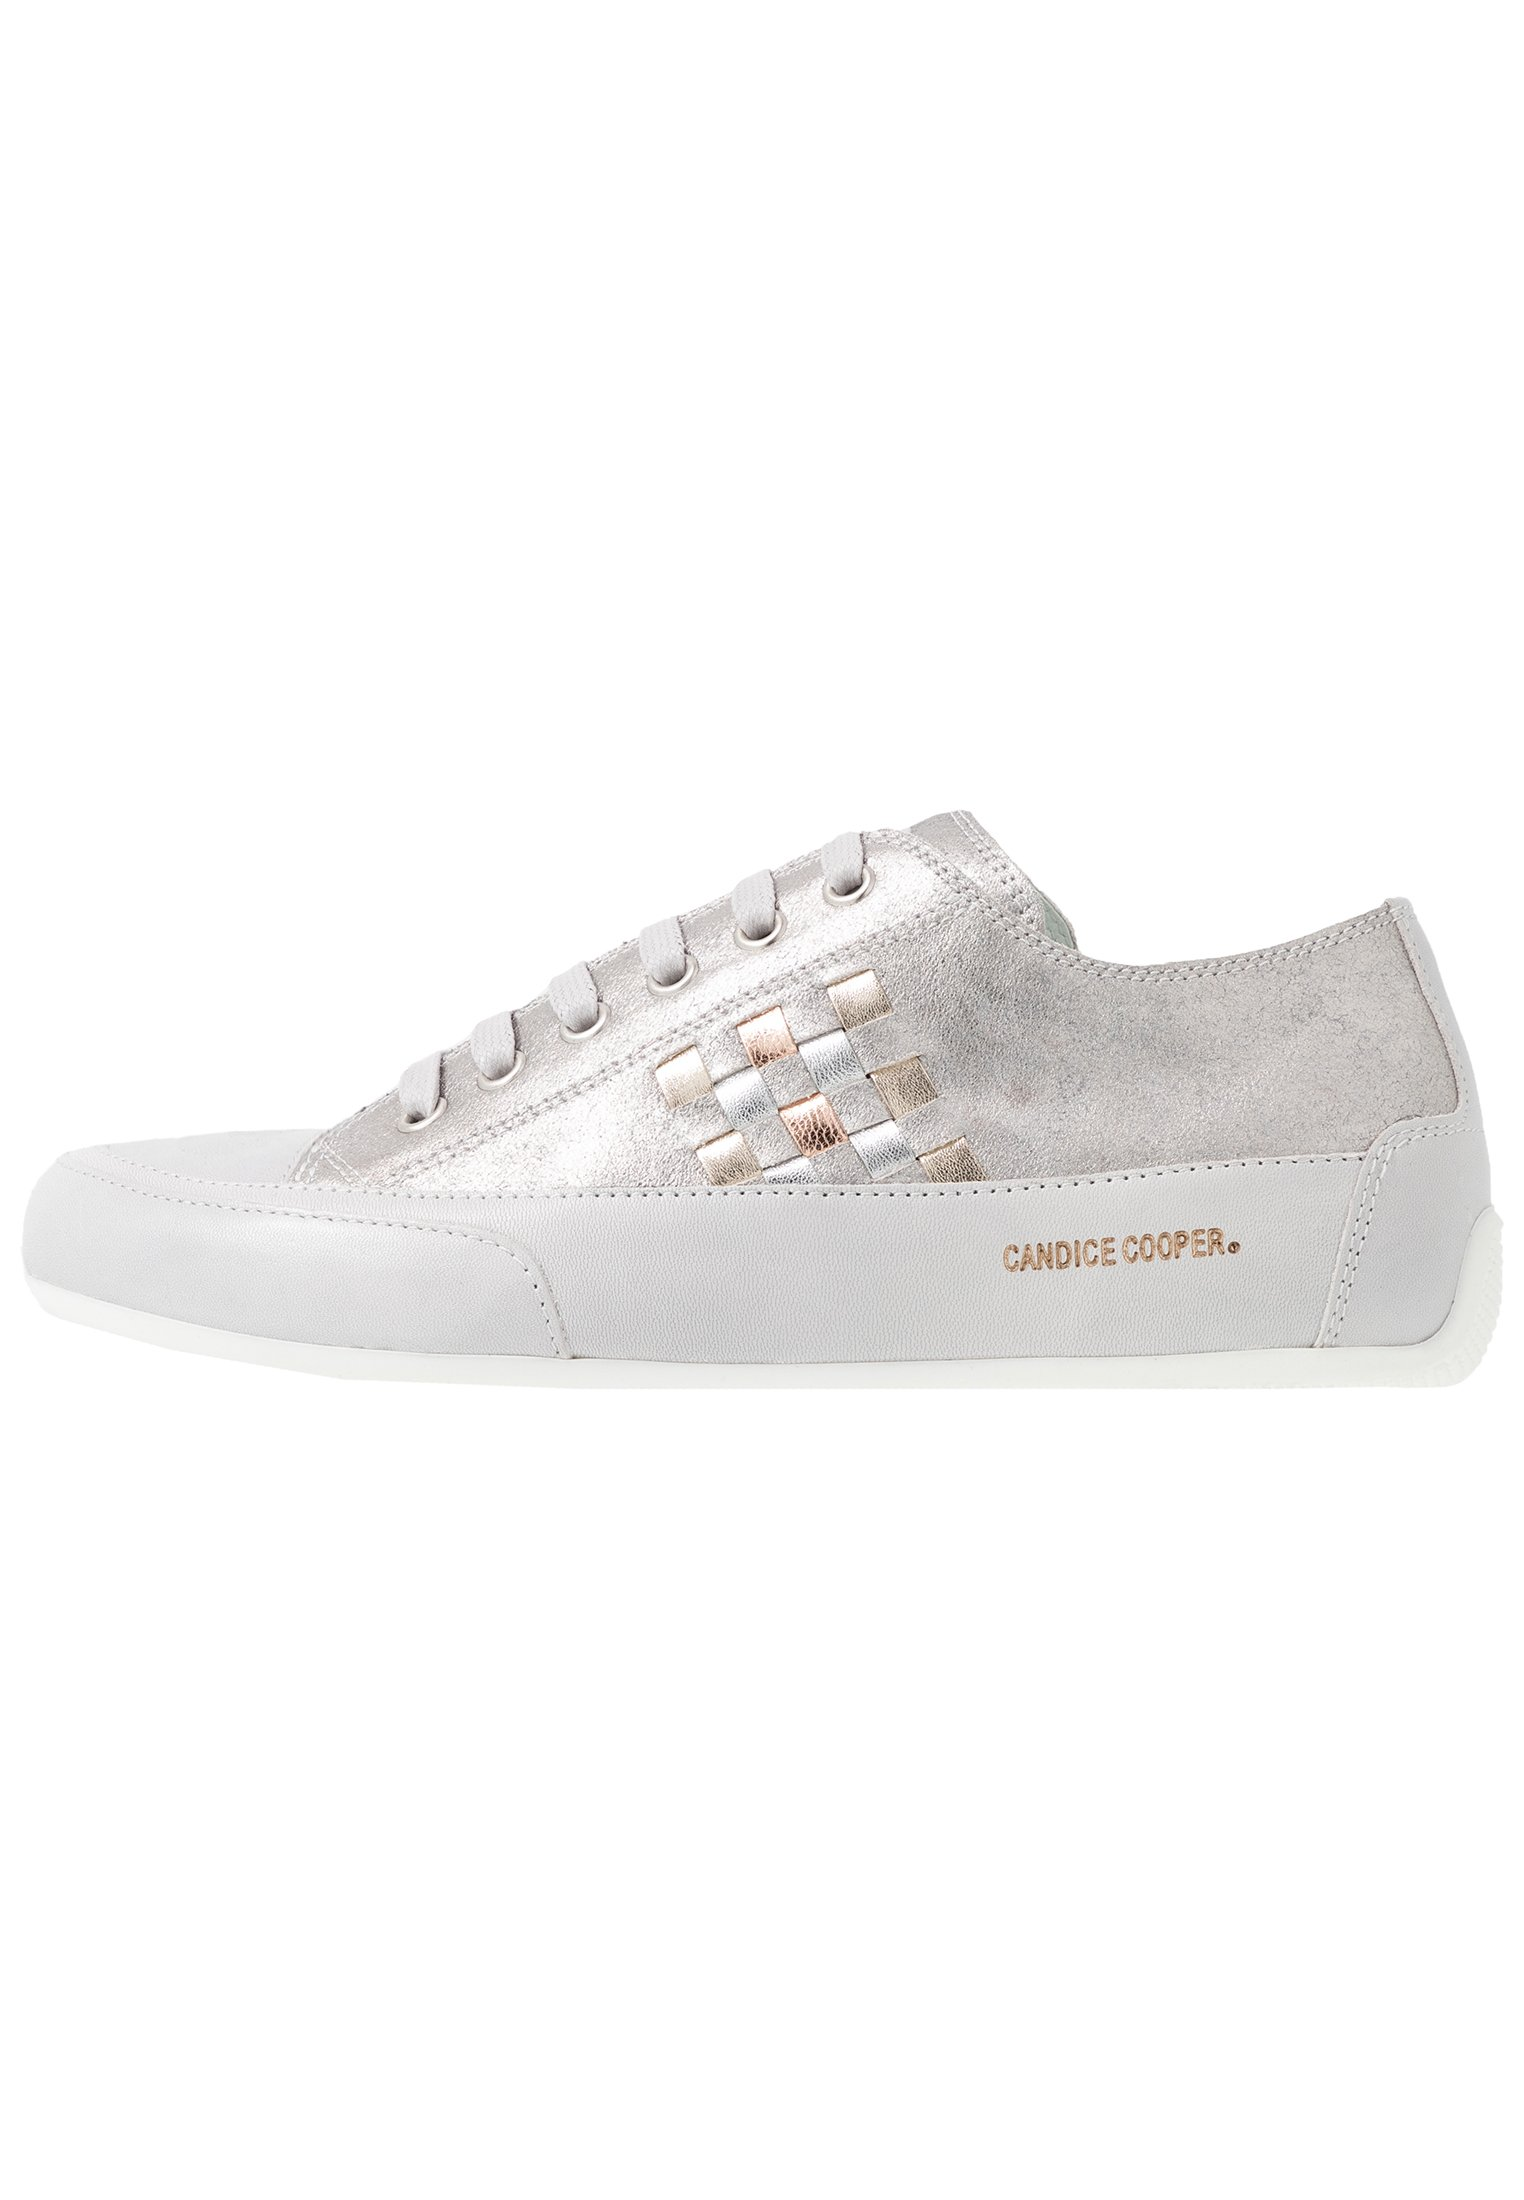 Candice Cooper Carina - Sneaker Low Artide Ice Black Friday